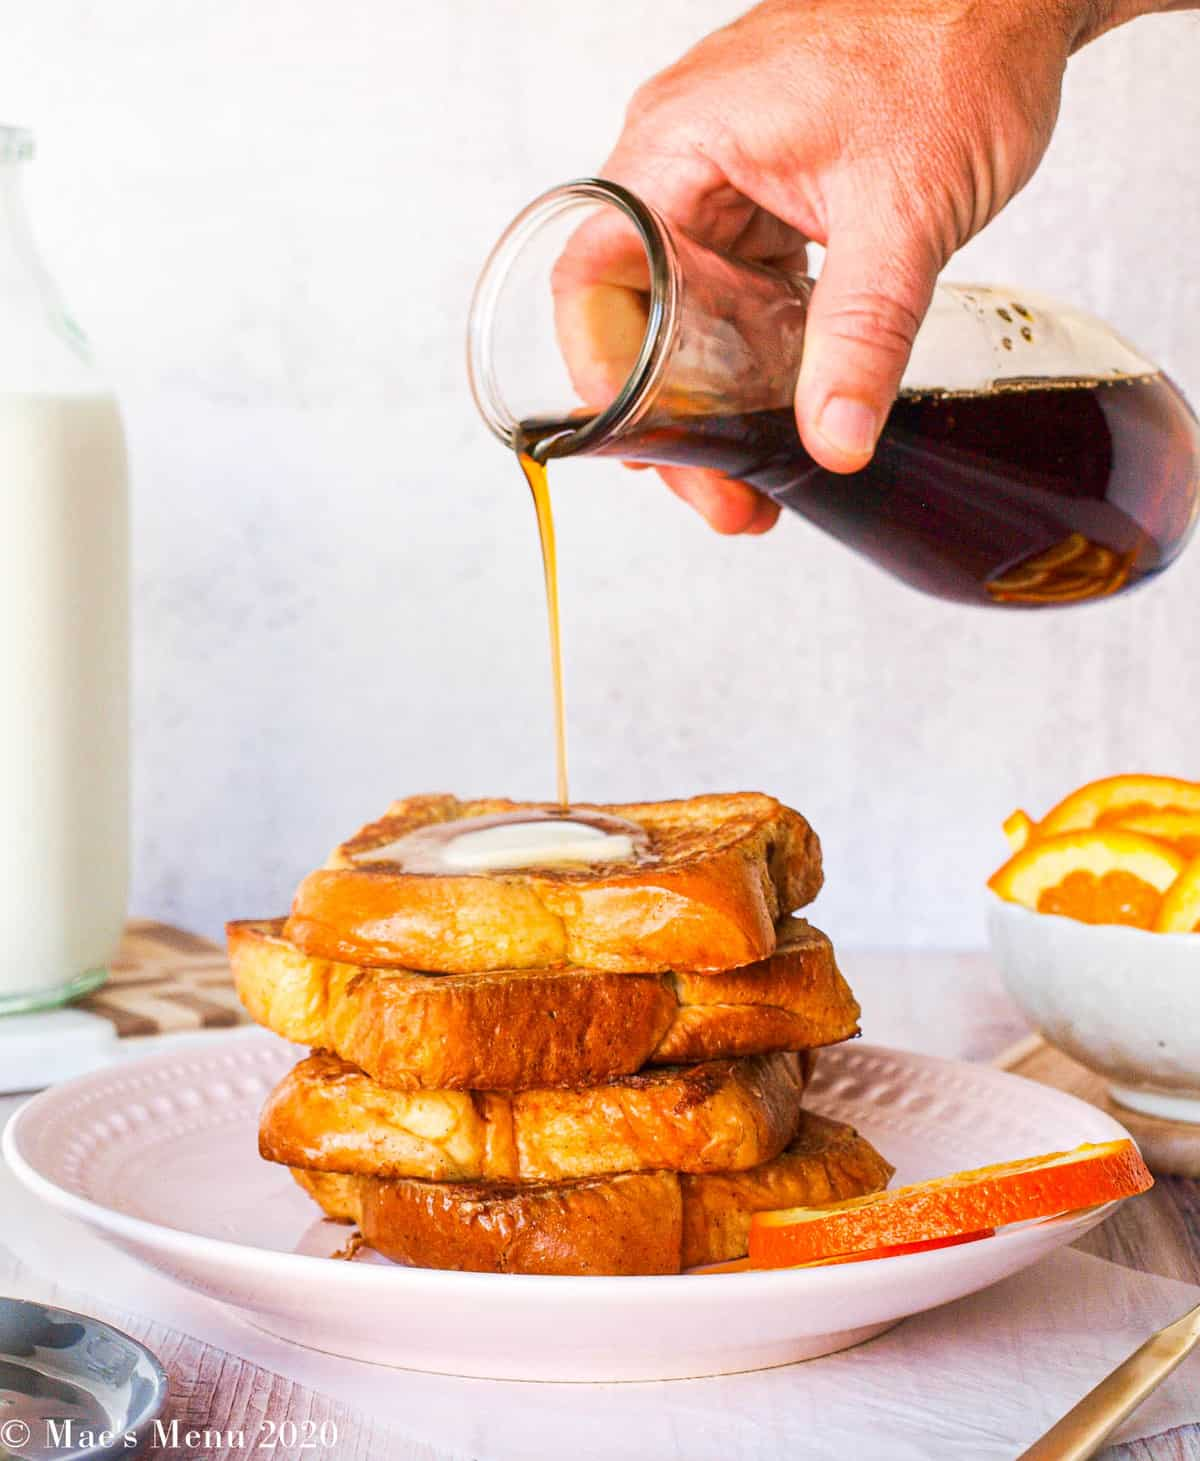 A large stack of brioche french toast with a hand pouring maple syrup on top